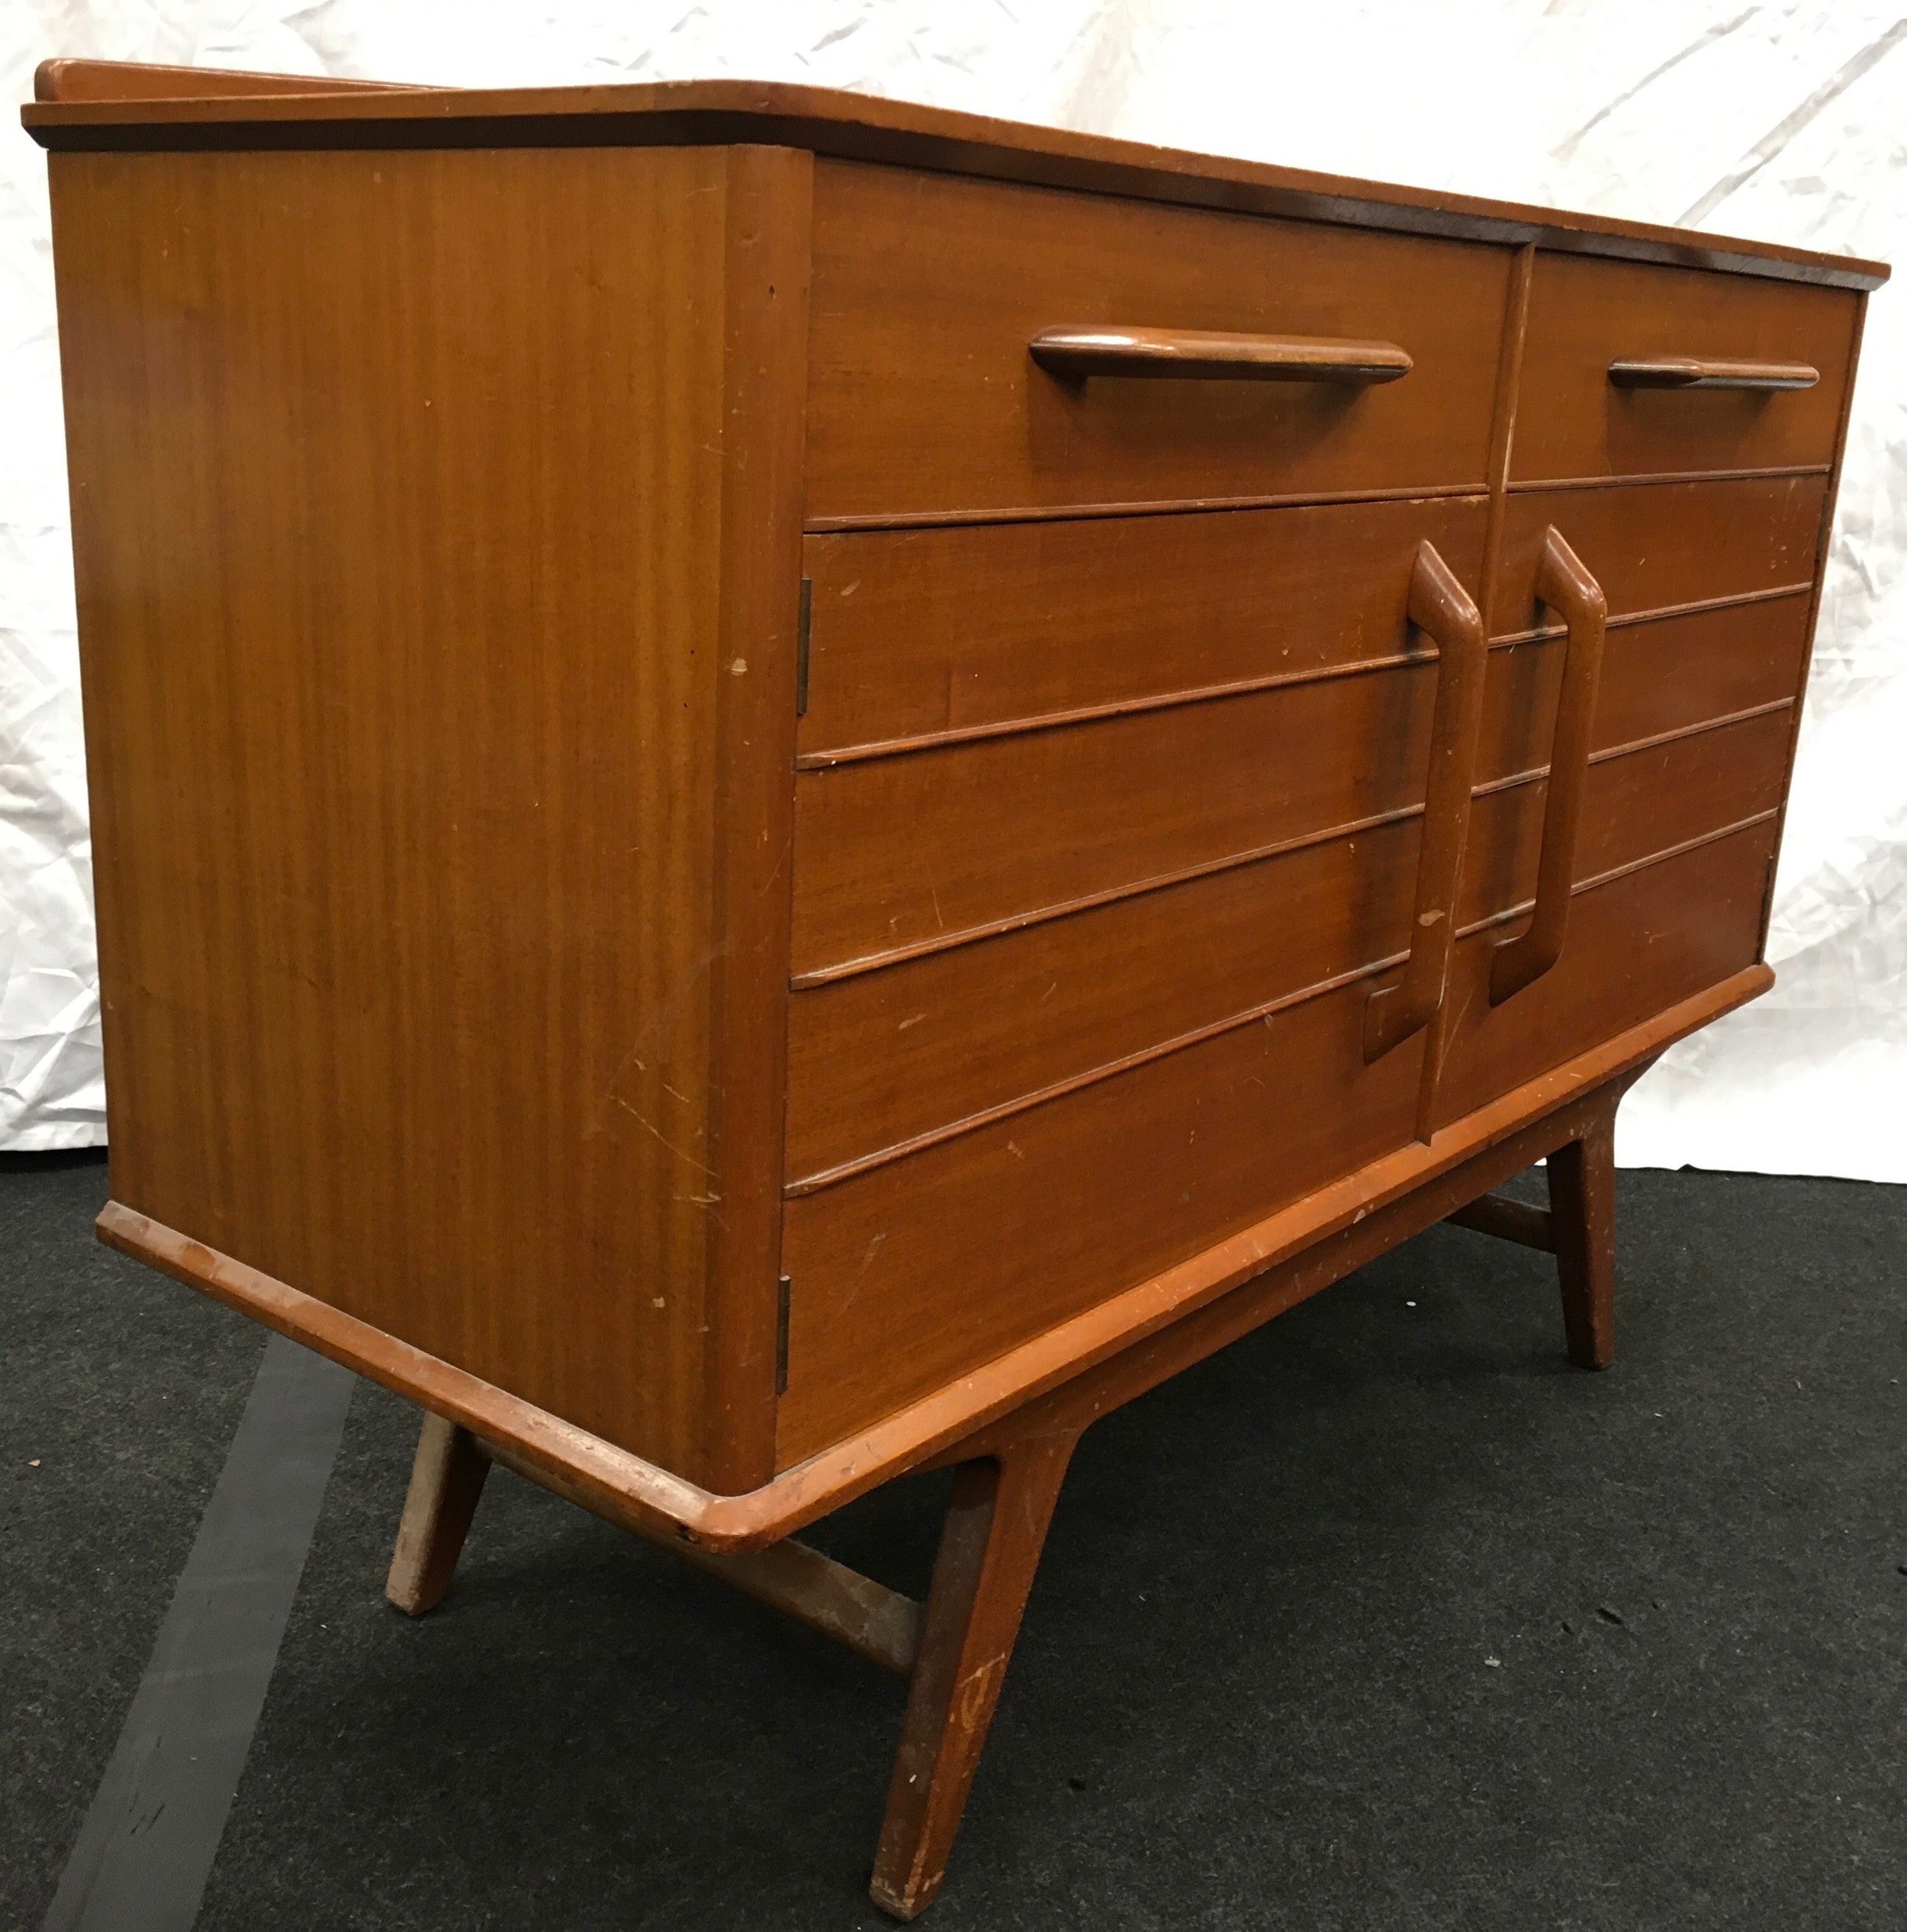 Teak mid 20th century two drawer two door sideboard by E Gomme Wycombe with makers mark 124x47x90cm. - Image 4 of 4